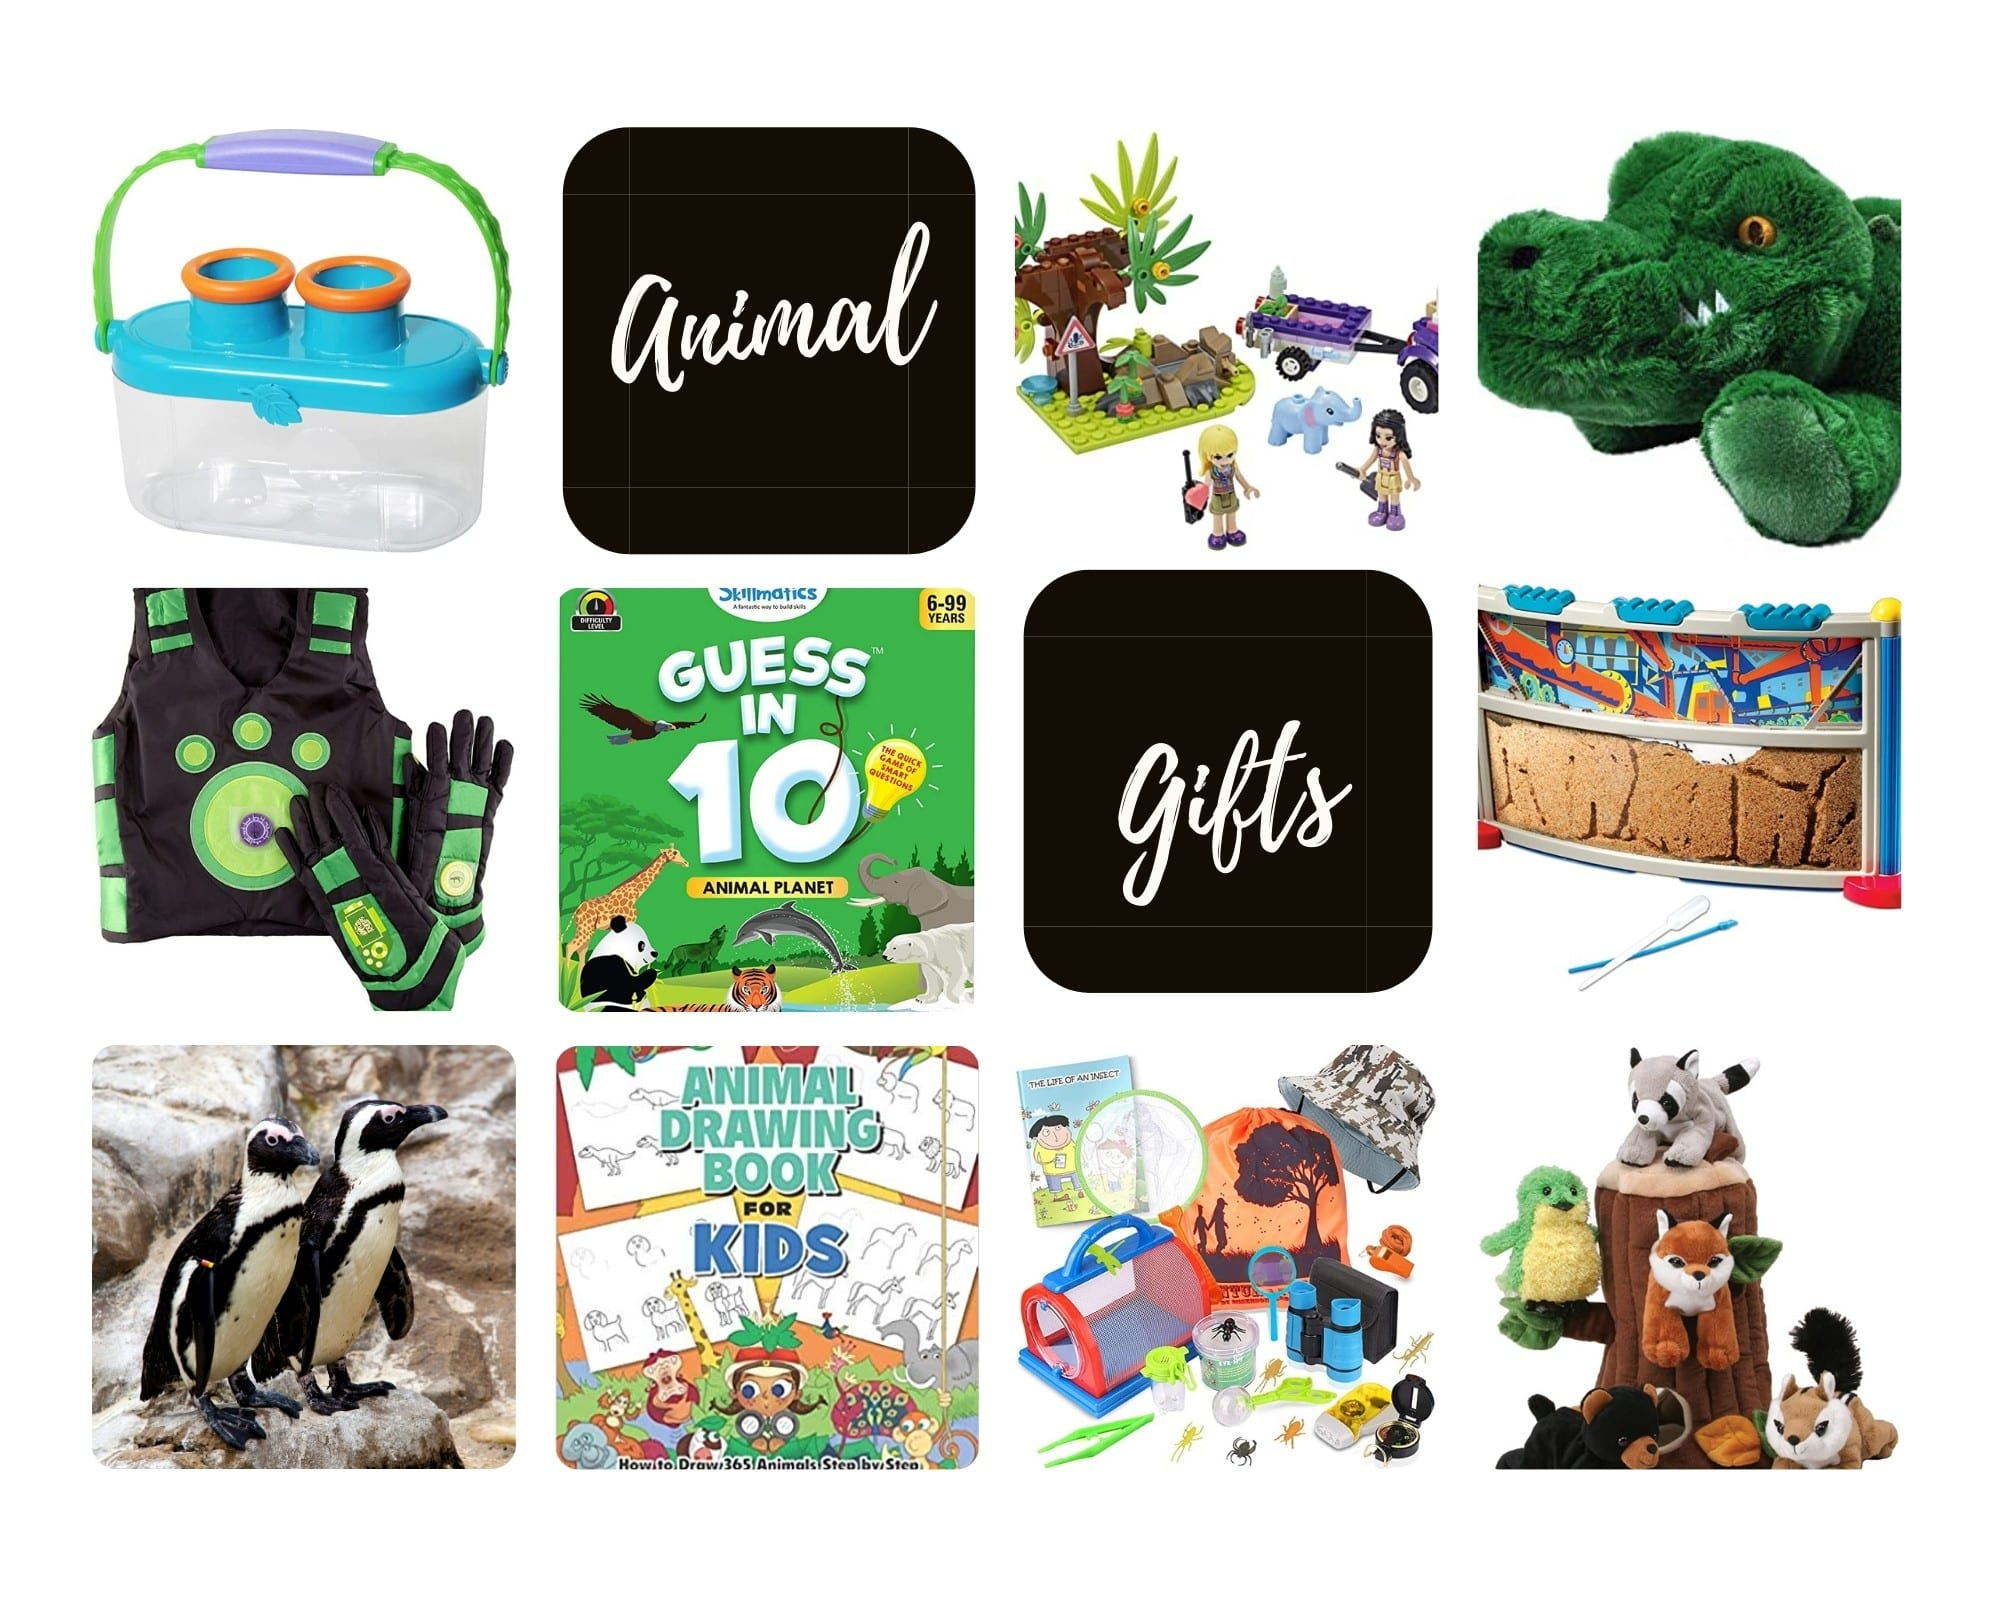 Product Images of all 10 Animal Gift Ideas